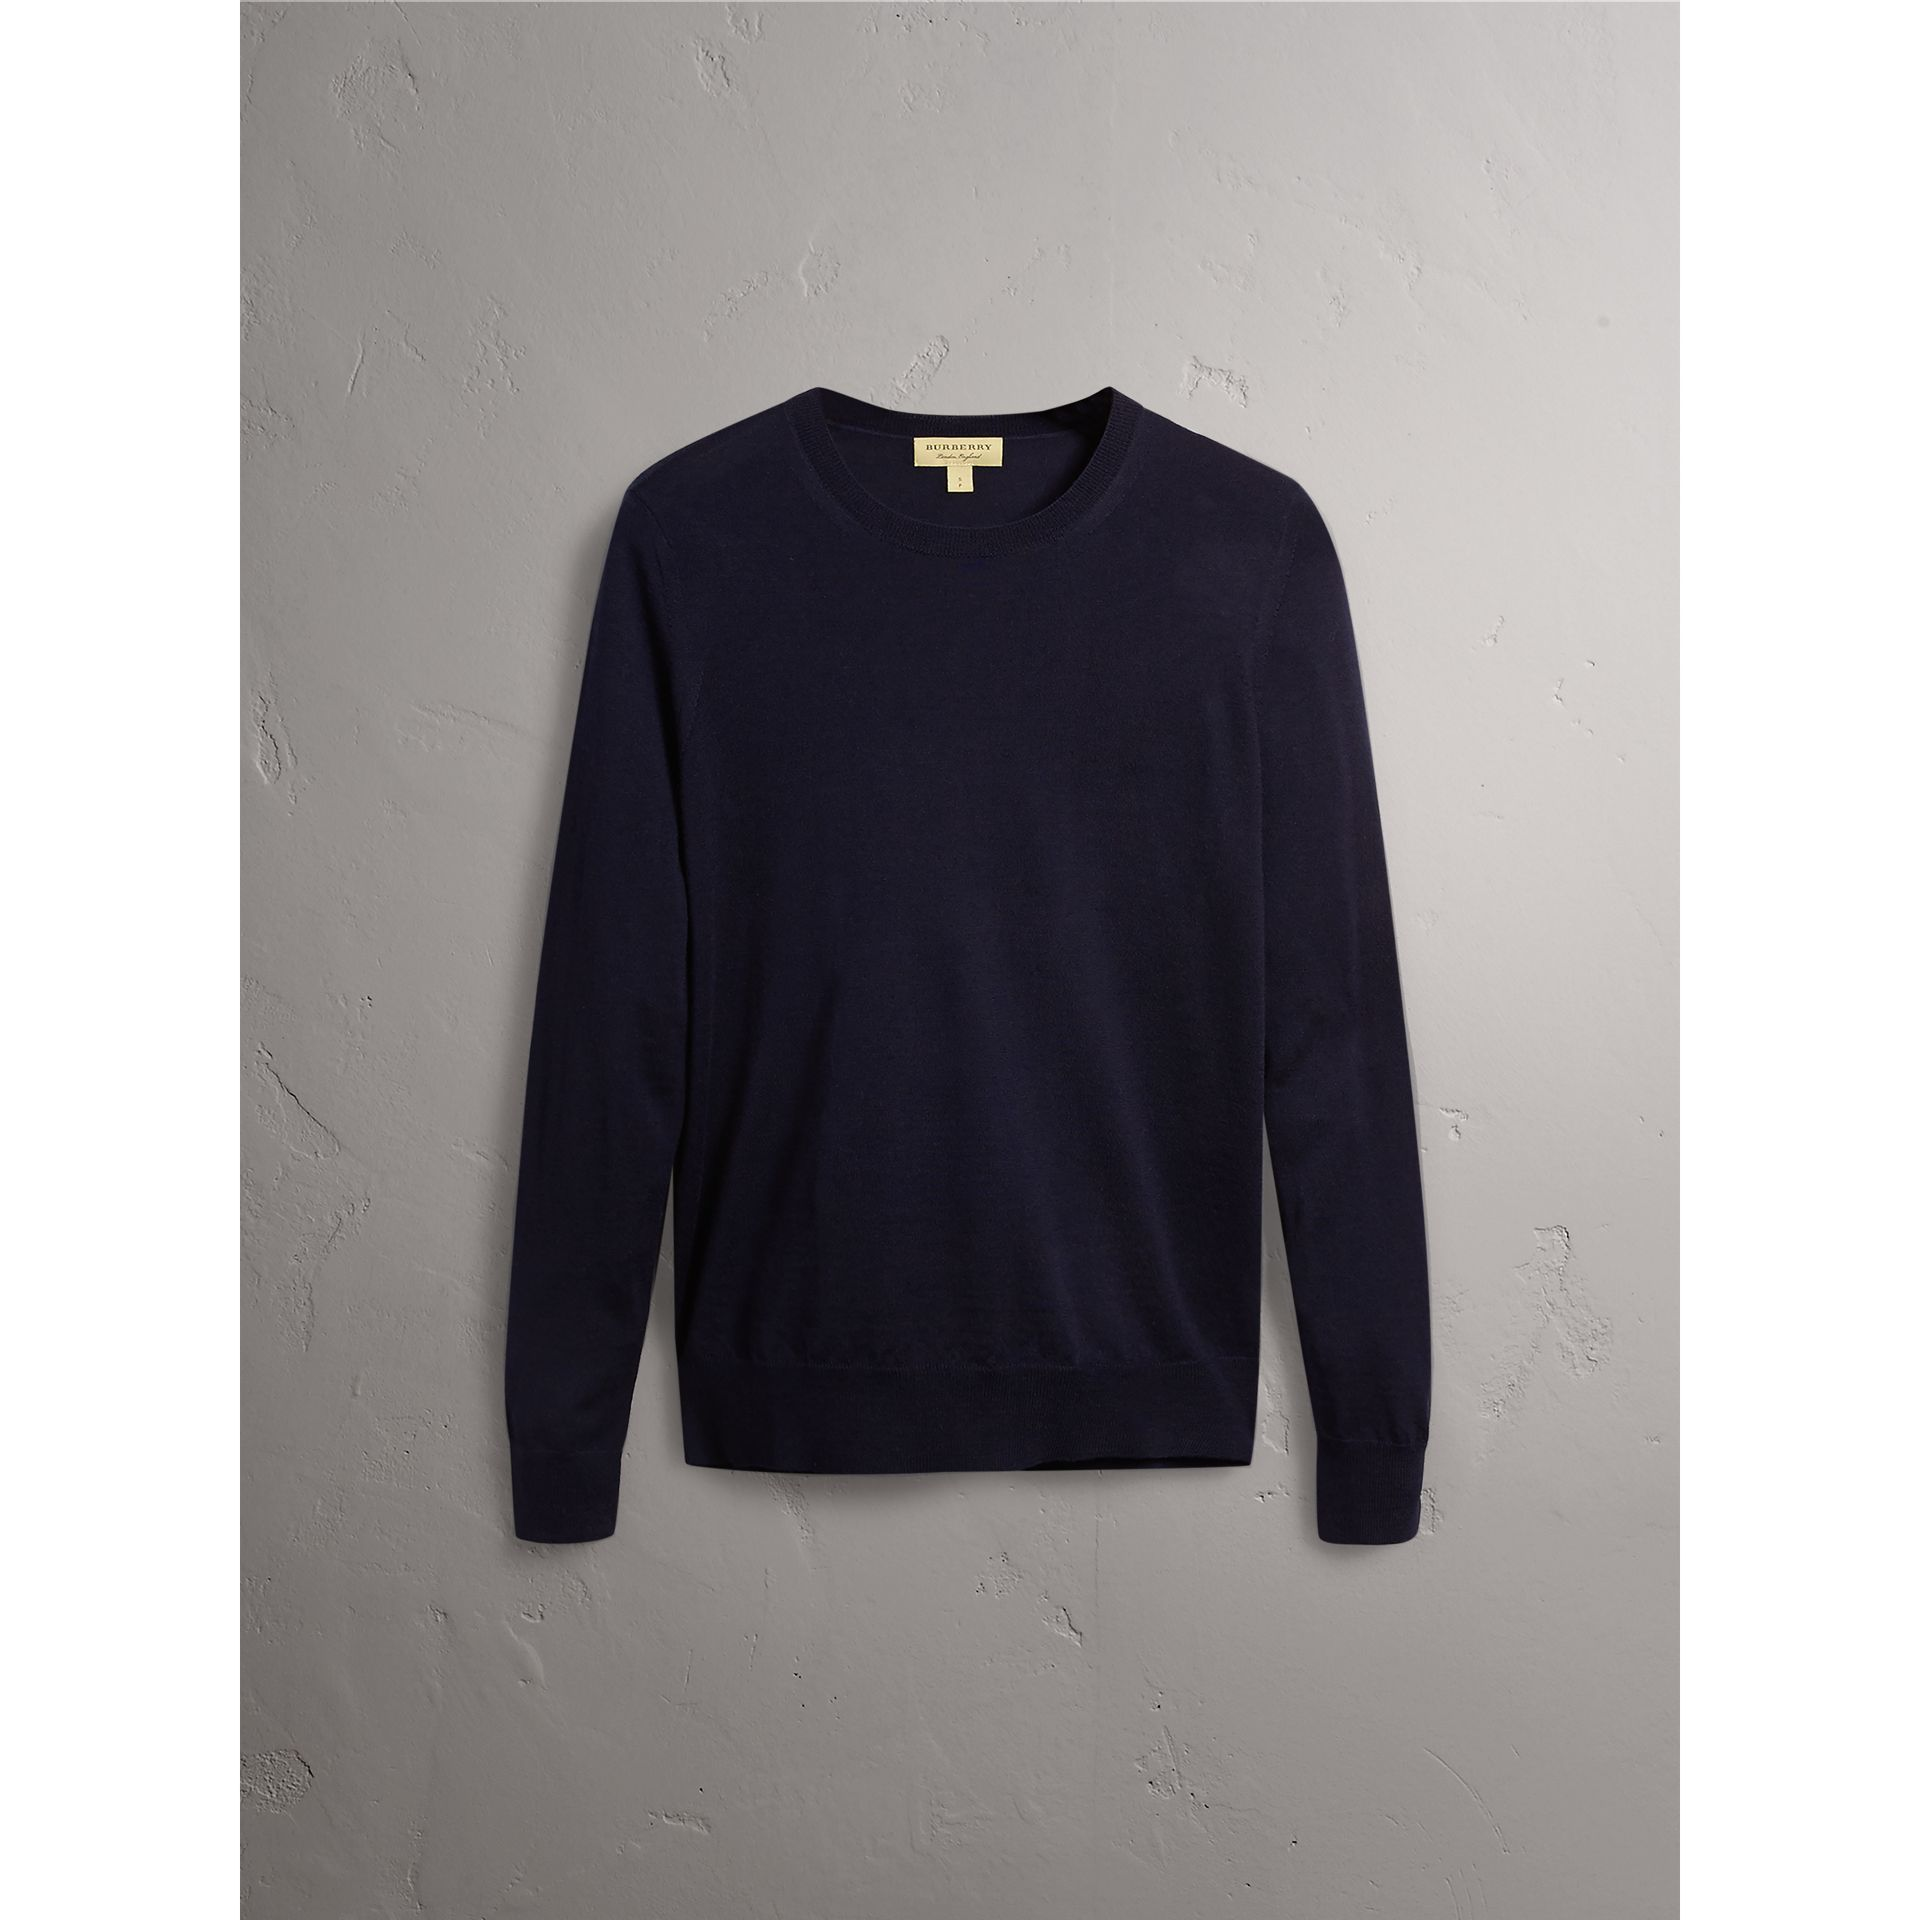 Check Detail Merino Wool Crew Neck Sweater in Navy - Women | Burberry Hong Kong - gallery image 4